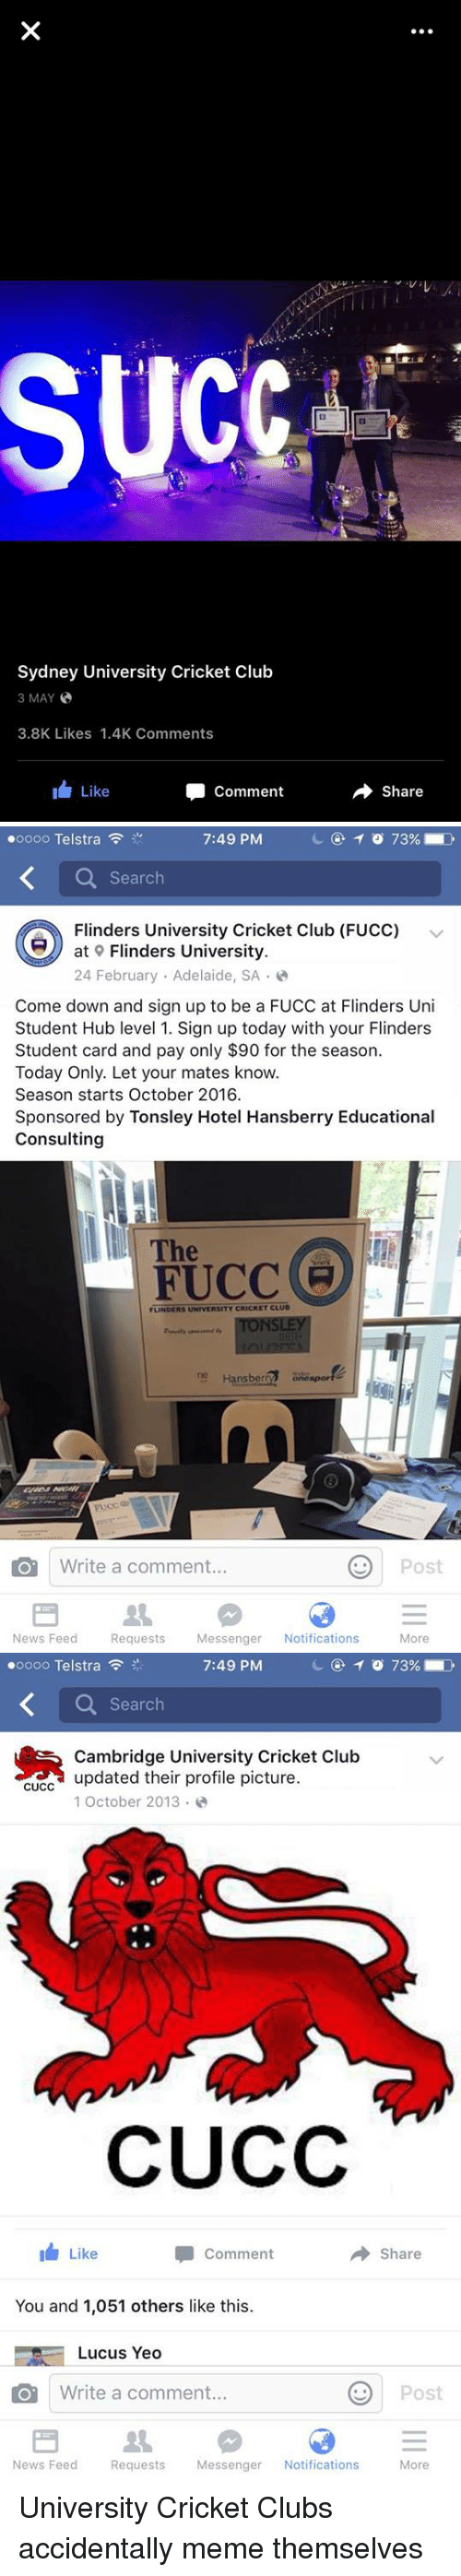 Club Meme: SUCC  Sydney University Cricket Club  3 MAY  3.8K Likes 1.4K Comments  Like  Comment  Share   oooo Telstra  7:49 PM  Search  Flinders University Cricket Club (FUCC)  v  at 9 Flinders University.  24 February Adelaide, SA  Come down and sign up to be a FUCC at Flinders Uni  Student Hub level 1. Sign up today with your Flinders  Student card and pay only $90 for the season.  Today Only. Let your mates know.  Season starts October 2016.  Sponsored by Tonsley Hotel Hansberry Educational  Consulting  The  FUCCE  FLINDERS UNIVERSITY CRICKET CLUB  ne Hans berRS  CO Write a comment...  Post  News Feed  Requests  Messenger  Notifications  More   oooo Telstra  7:49 PM  Search  Cambridge University Cricket Club  updated their profile picture.  CUCC  1 October 2013  CUCC  Comment  Share  Like  You and 1,051 others like this.  Lucus Yeo  CO Write a comment...  Post  News Feed  Requests  Messenger  Notifications  More University Cricket Clubs accidentally meme themselves